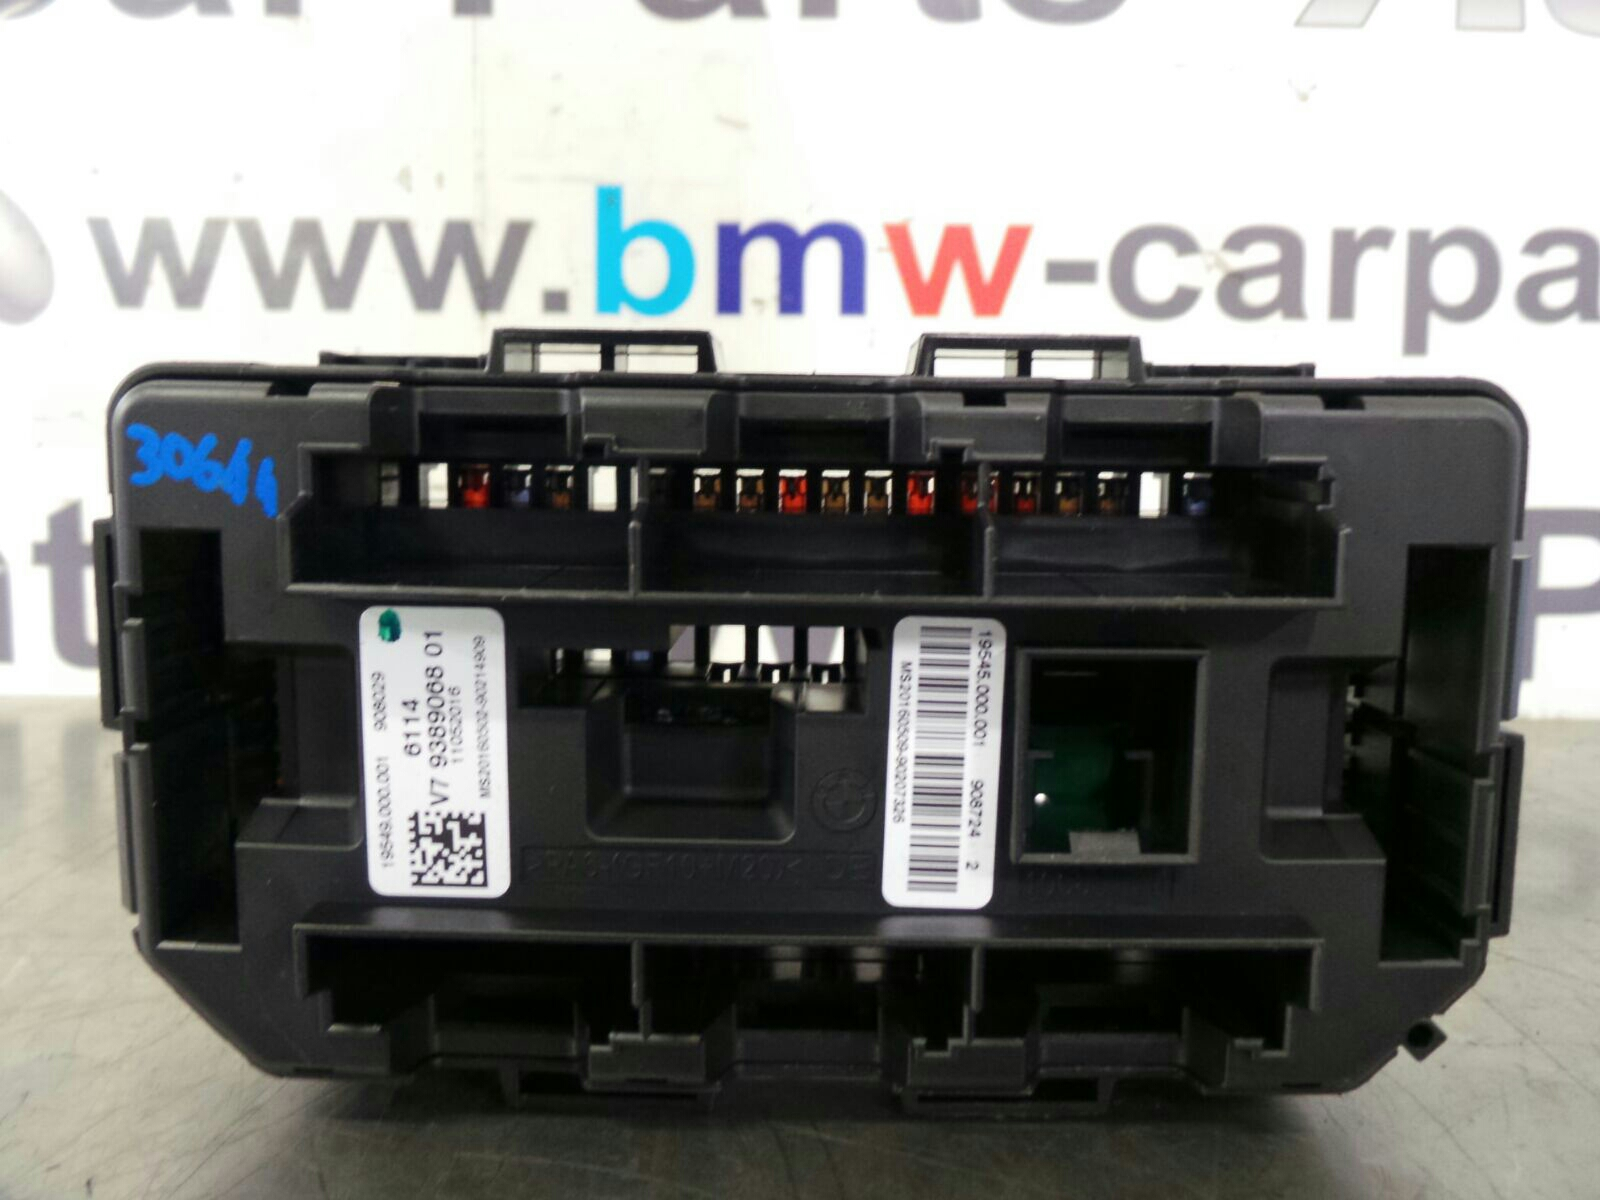 Bmw 1 Series F20 Fuse Box 9224866 9389068 Breaking For Used And